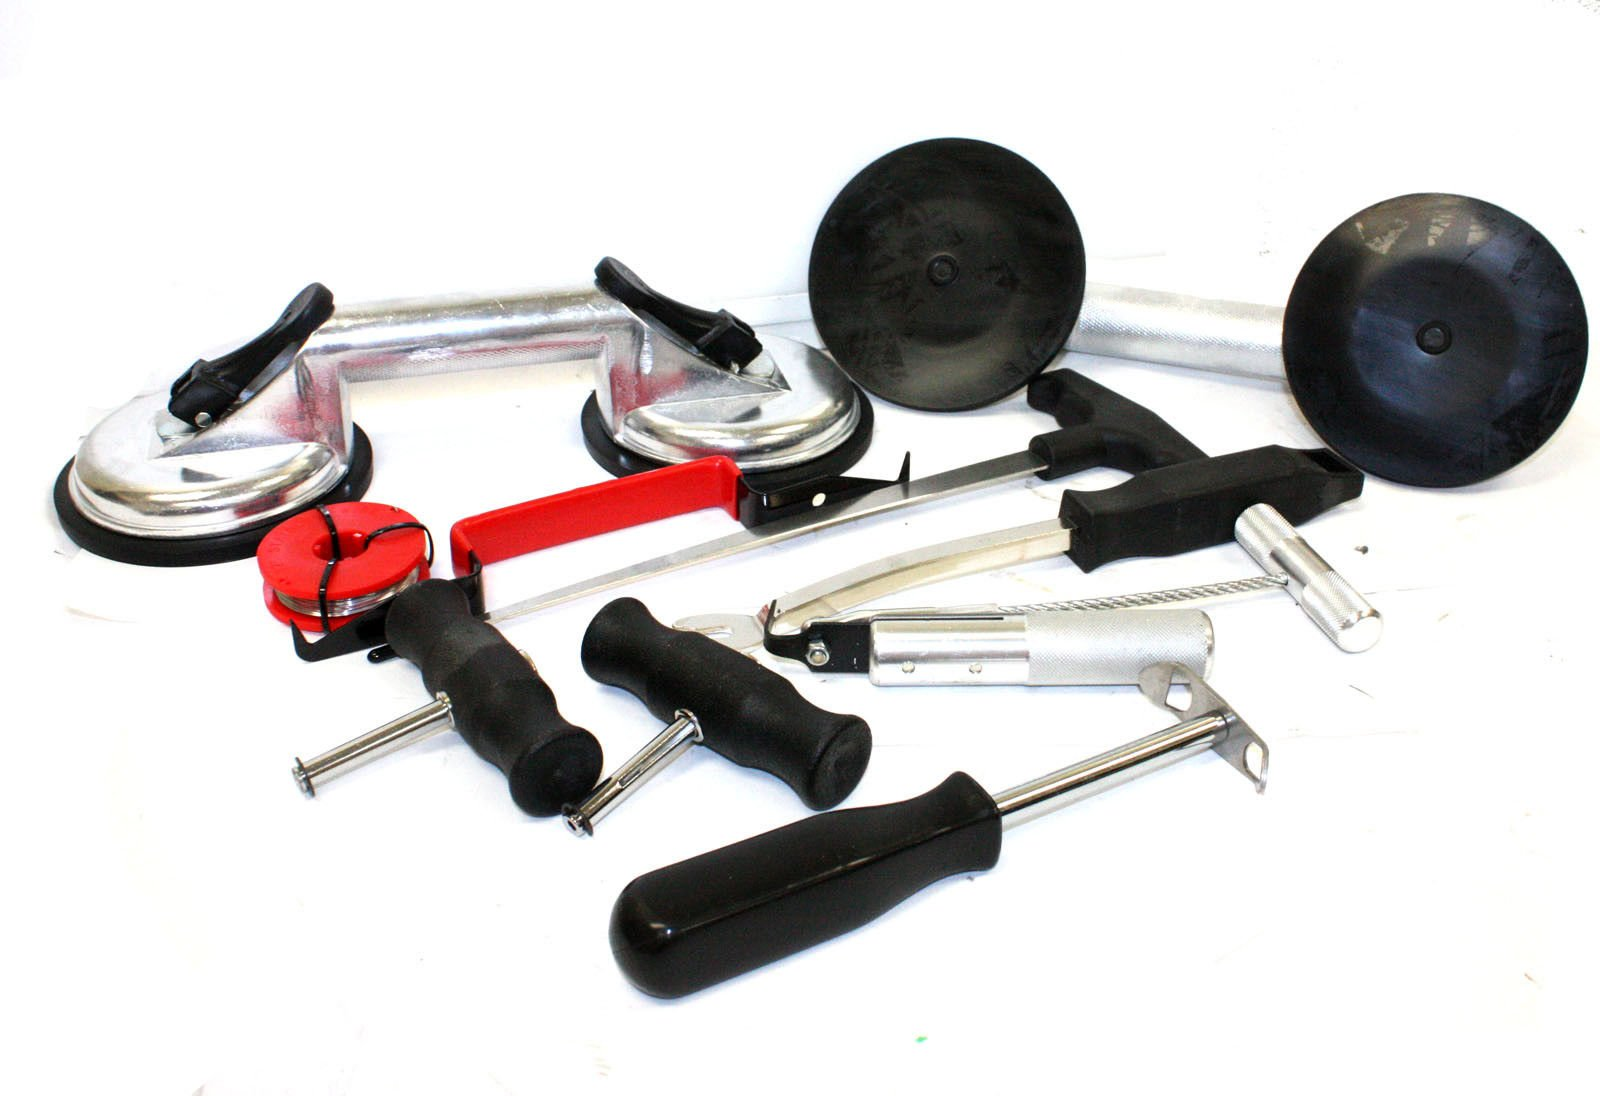 9TRADING 10pc Windshield Removal Install Tool Kit Wind Glass Remover with Hand Suction Cups